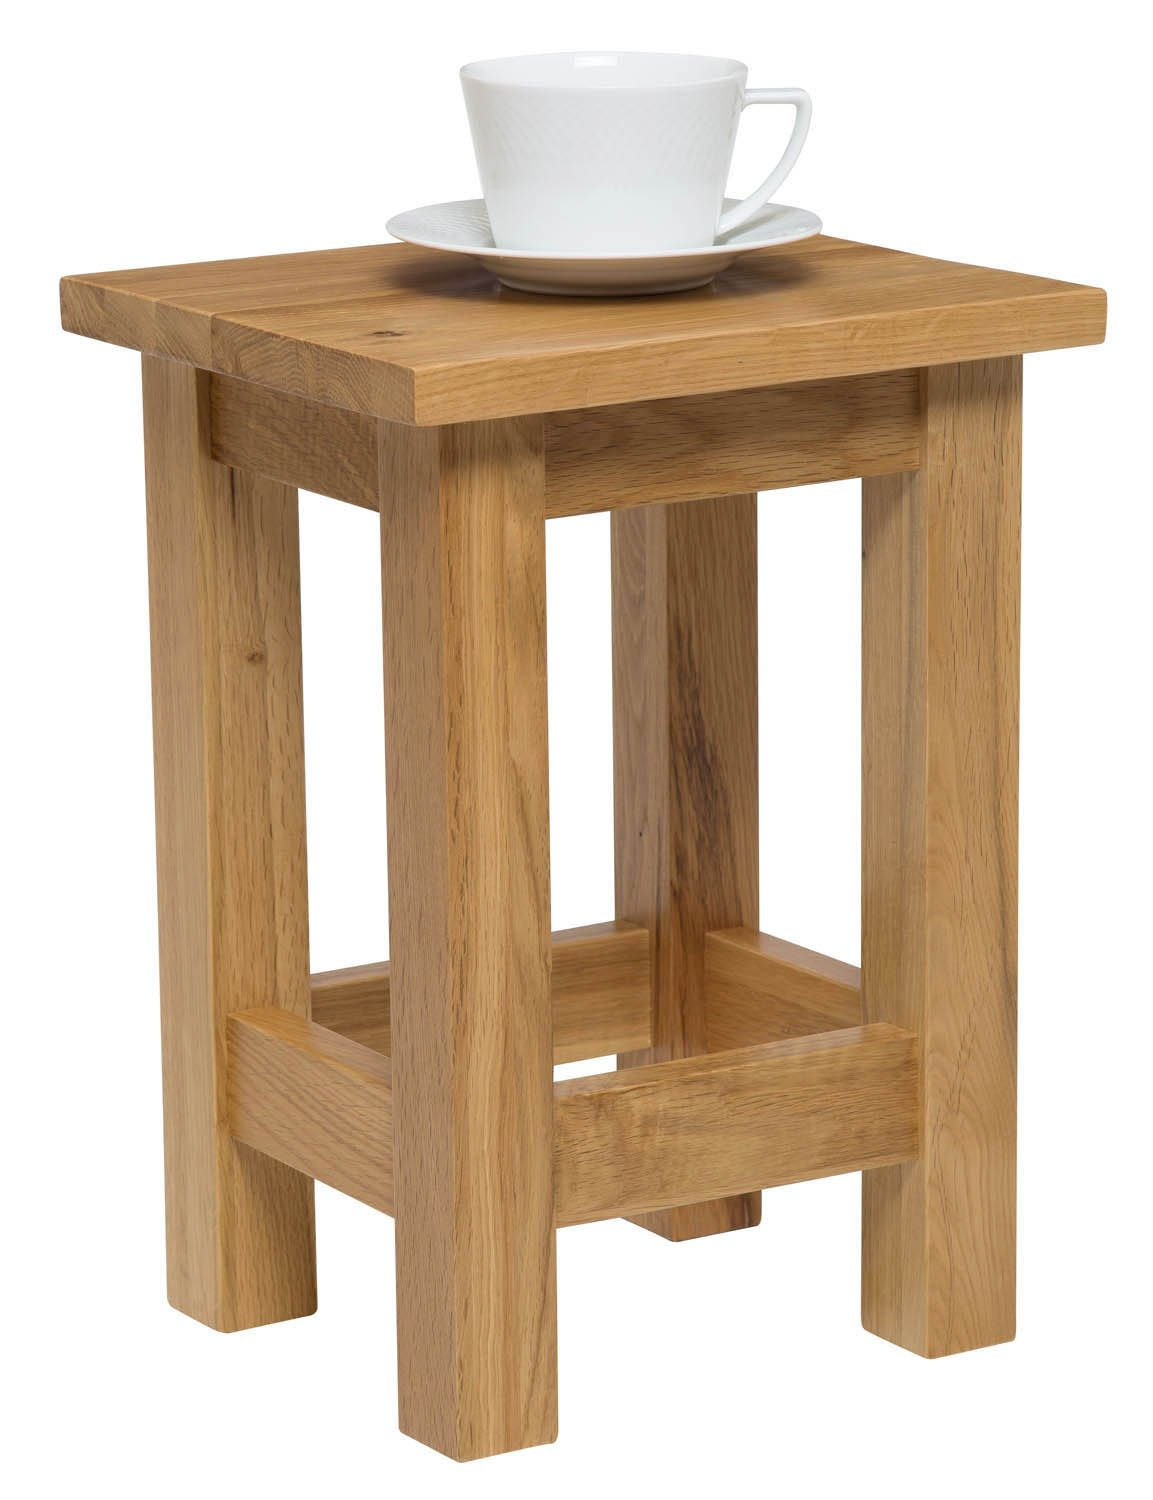 Waverly Oak Small Side Table In Light Oak Finish | Solid Wooden Slim  Occasional / Coffee / Lamp / End / Console Stand: Amazon.co.uk: Kitchen U0026  Home